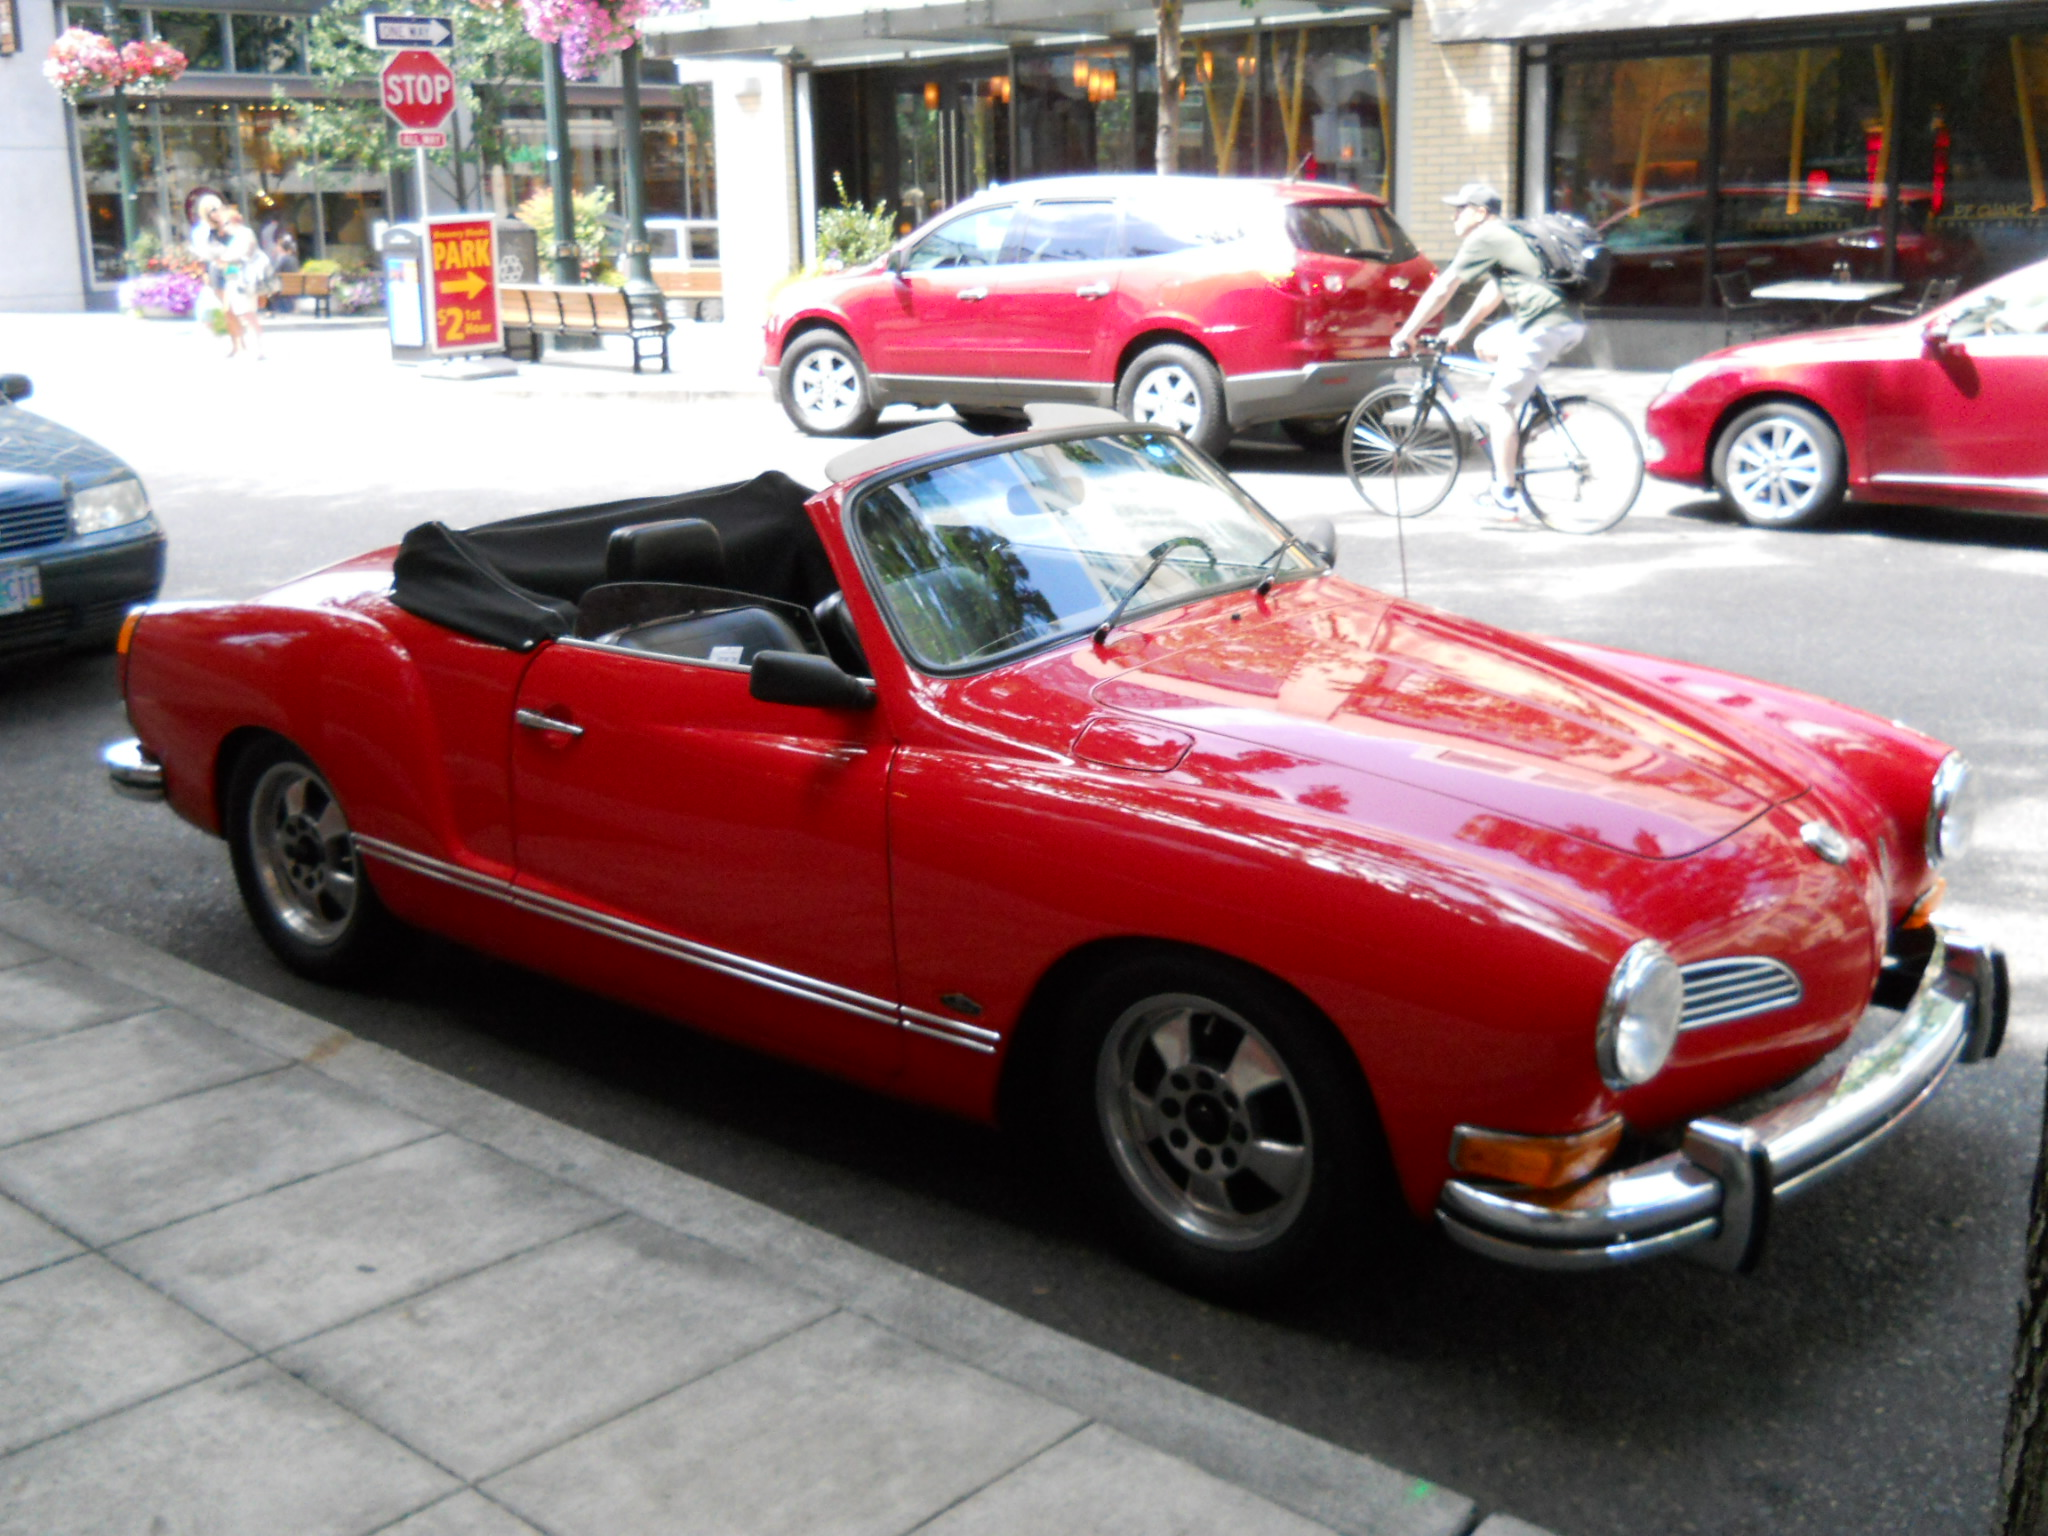 VOLKSWAGEN KARMANN CABRIOLET red